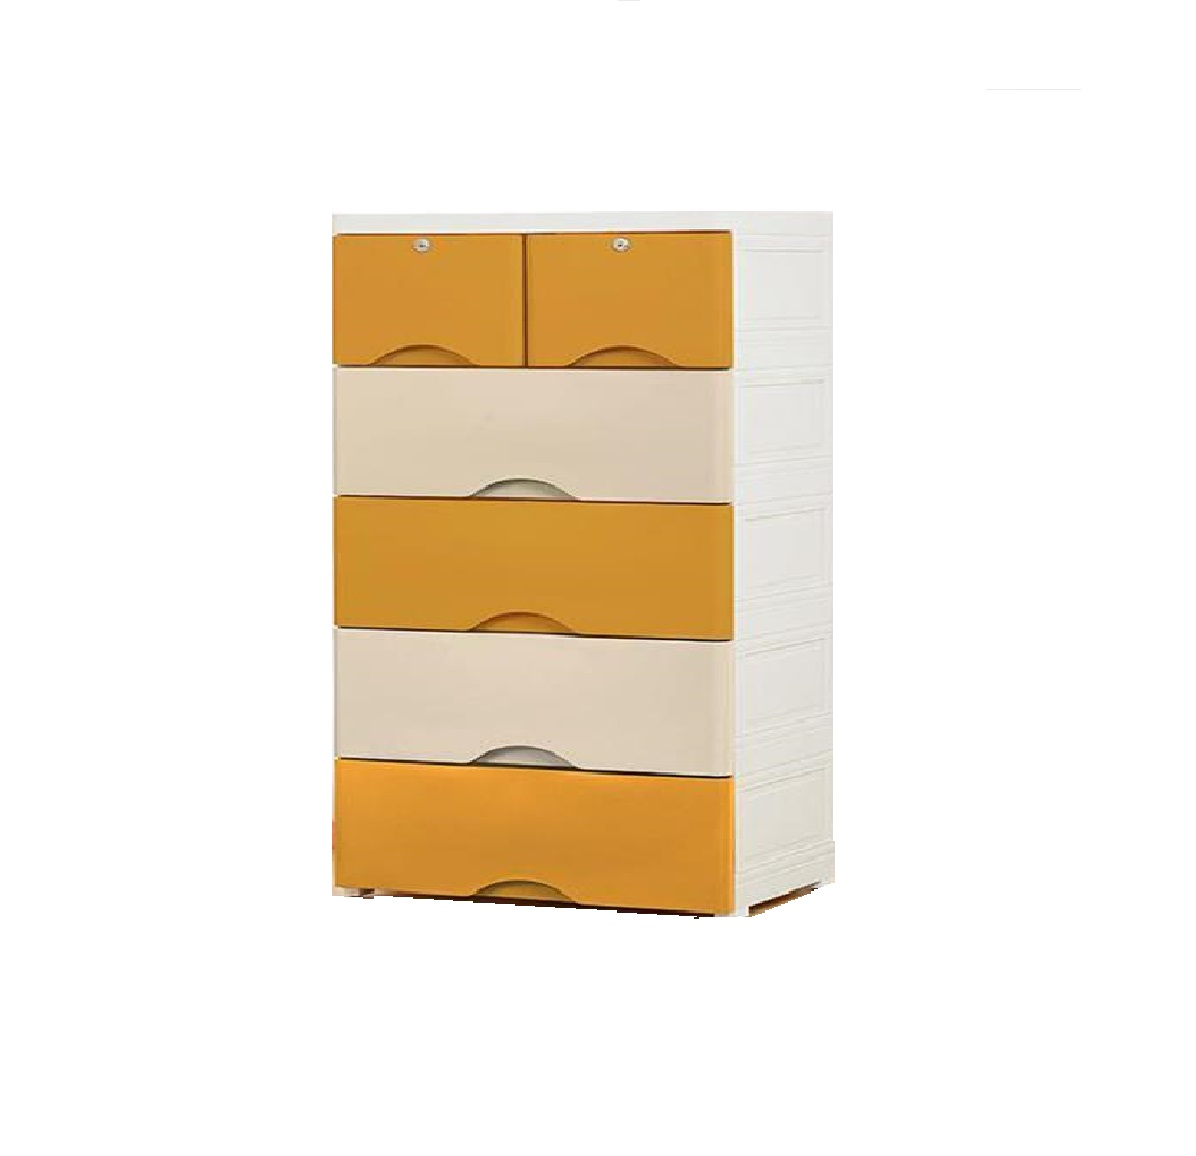 Plain Kids Cabinet Chest of Drawers/Organizer/Storage  DIY 6 Drawers Mustard Beige 58 L 40 D 113 H CMS